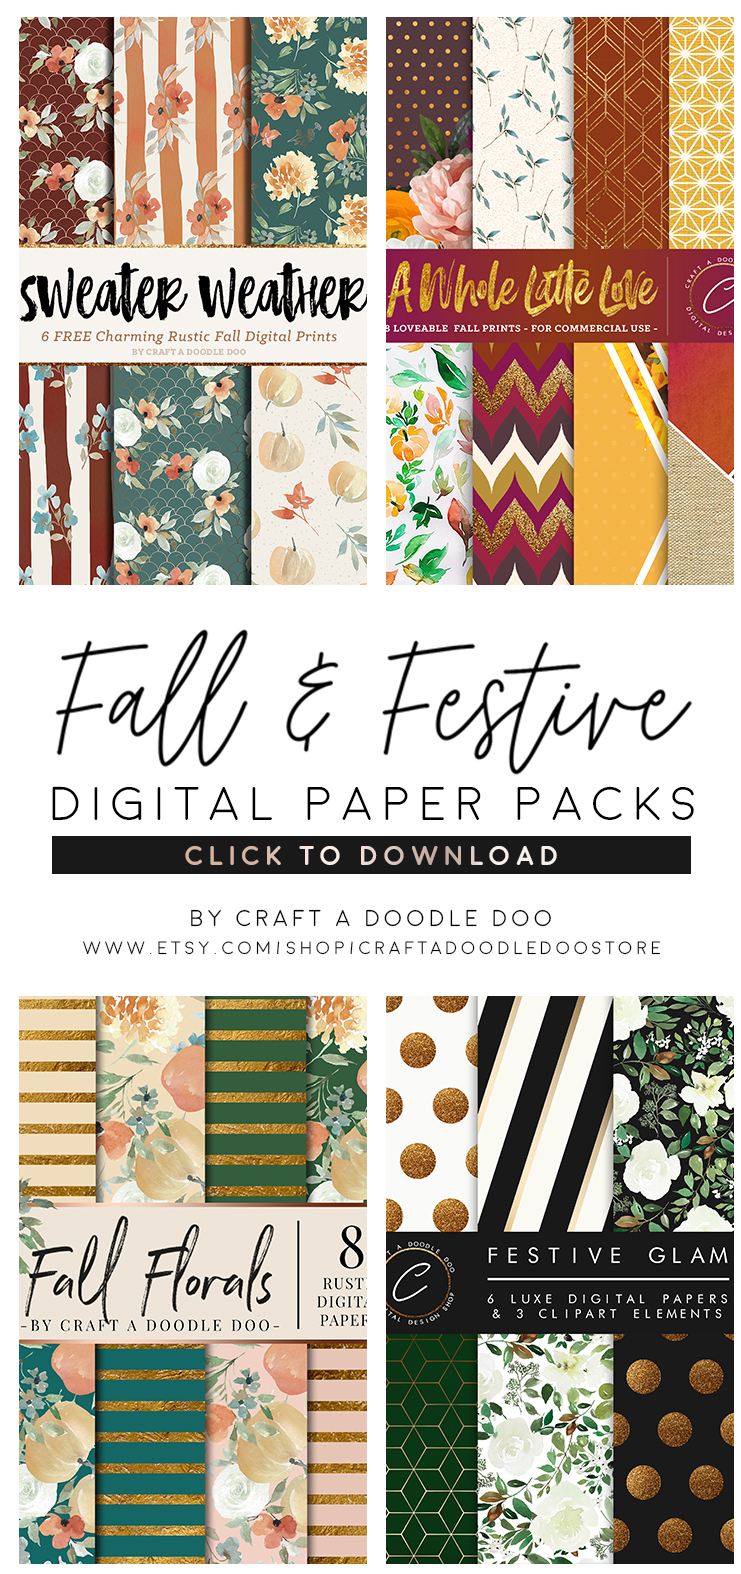 Fall and Festive Digital Paper Packs, patterns and backgrounds for scrapbooking, DIY , crafts and decorating projects. Holiday, thanksgiving and fall printables by Craft A Doodle Doo #digitalpaperpacks #fallprintablepapers #fallfloralpatterns